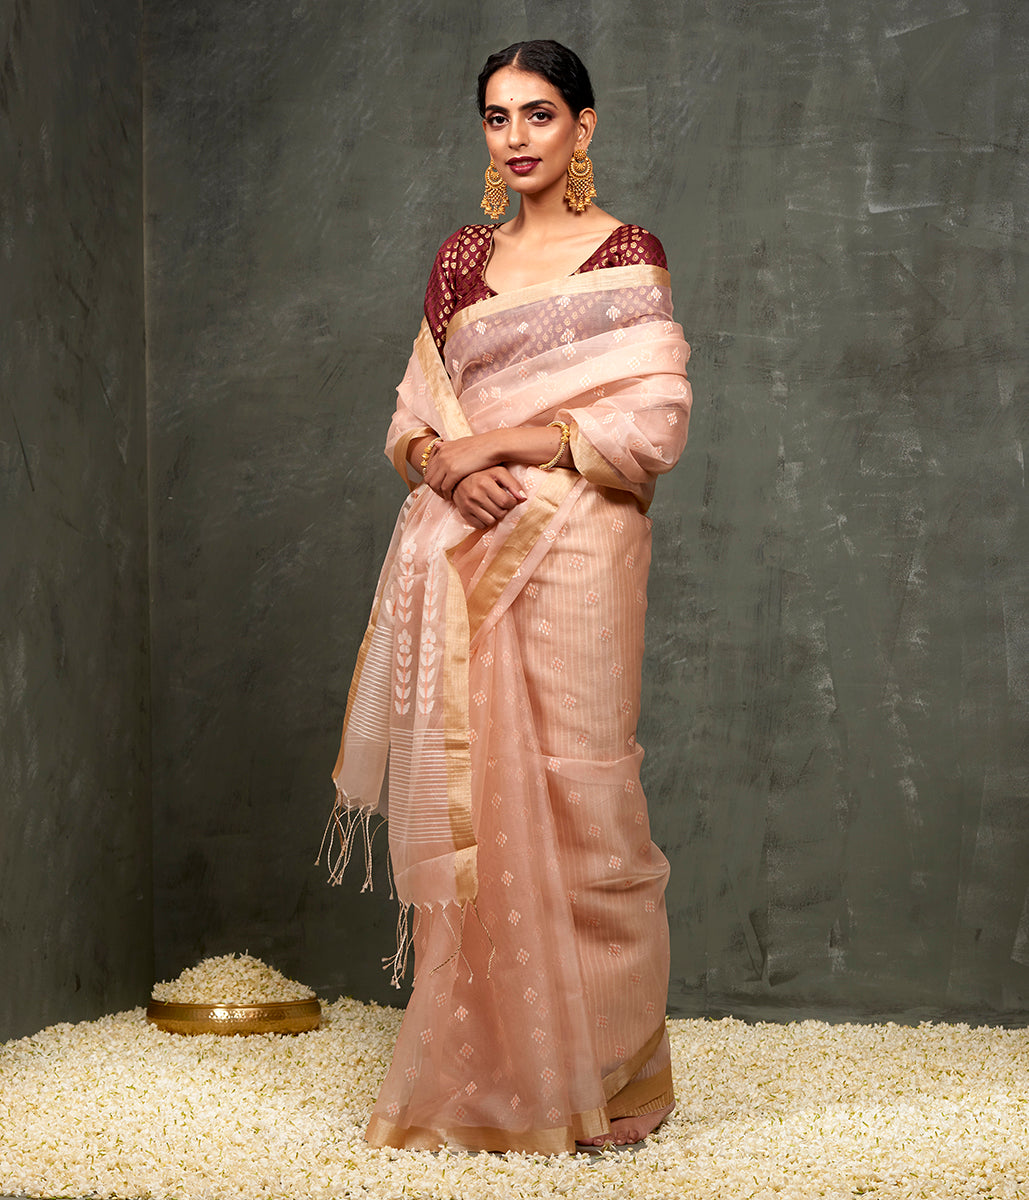 Handwoven Light Peach Dhakai Jamdani Saree with White Booti